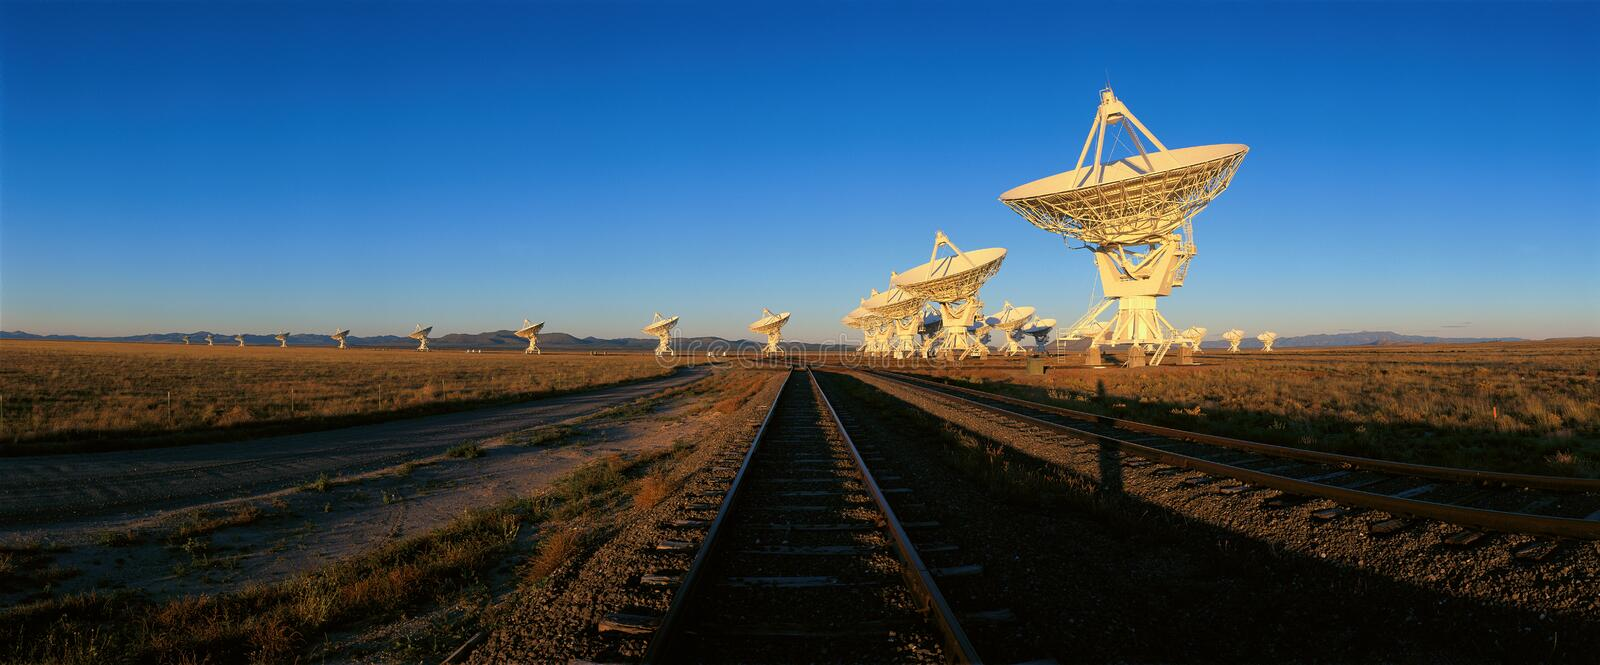 Radio telescope dishes at National Radio Astronomy Observatory in Socorro, NM stock image